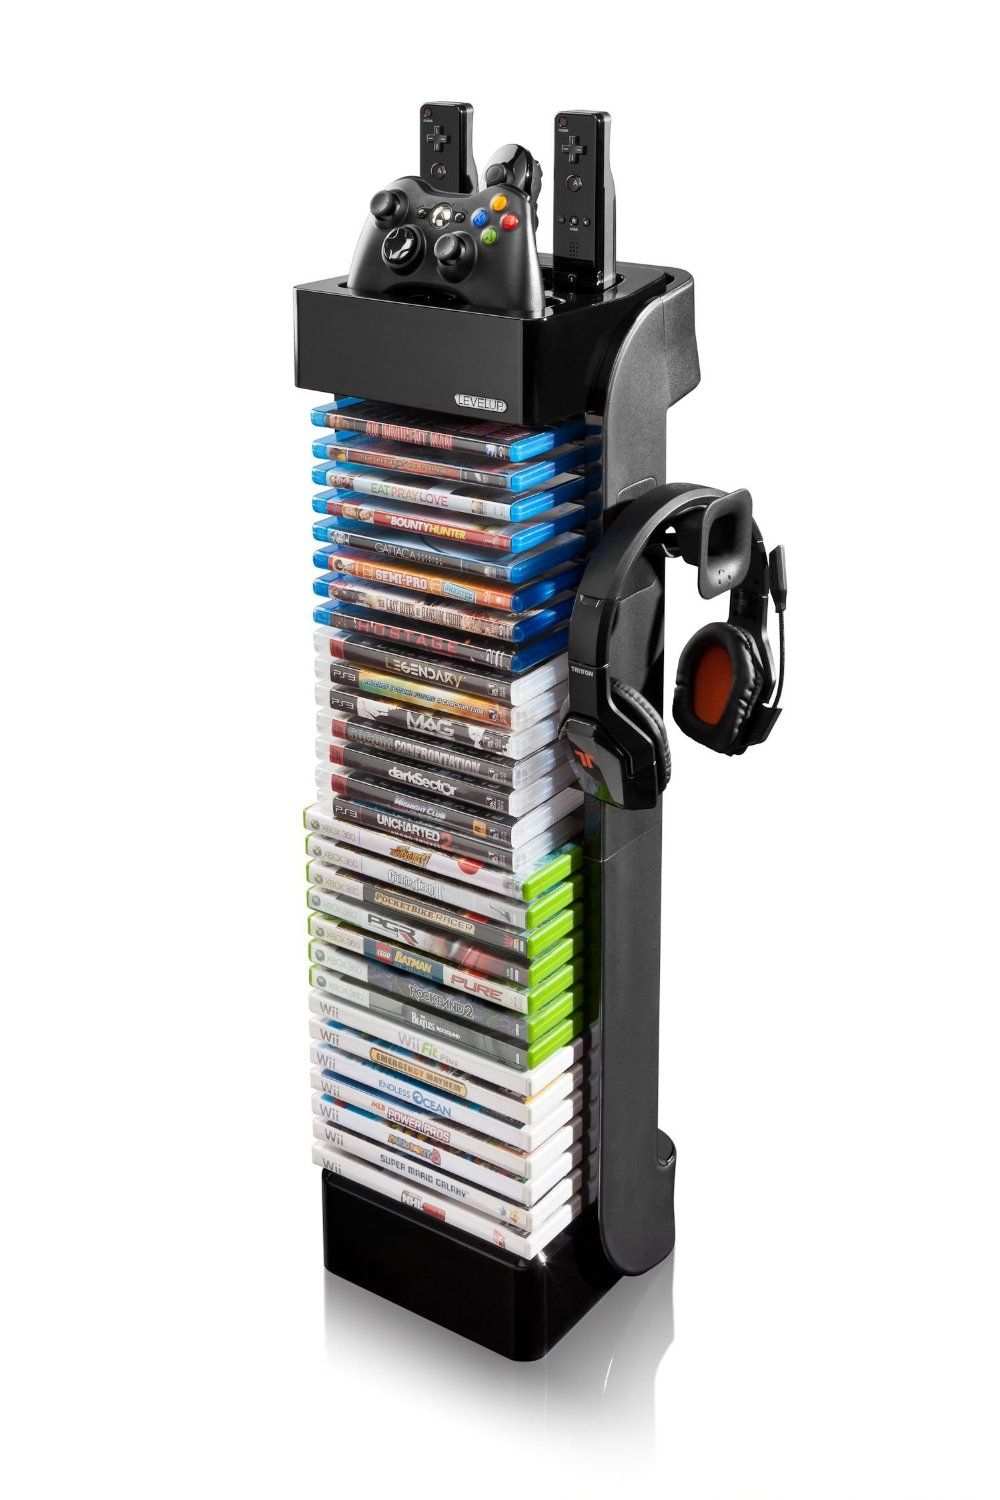 Lovely Amazon.com: LevelUp Controller Universal Storage Tower With Headset Holder: Video  Games